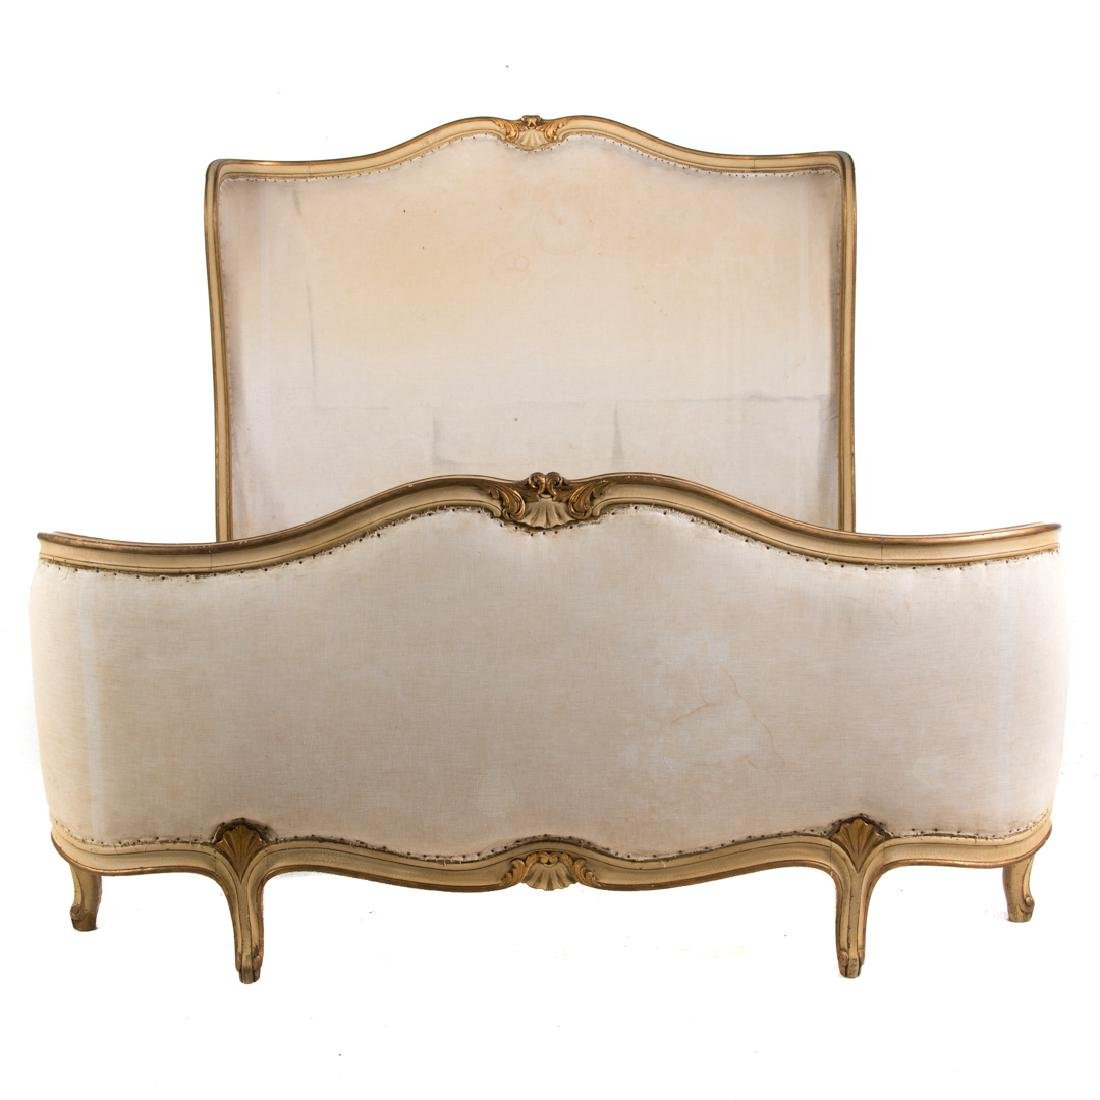 Louis XV style painted & parcel gilt bedstead